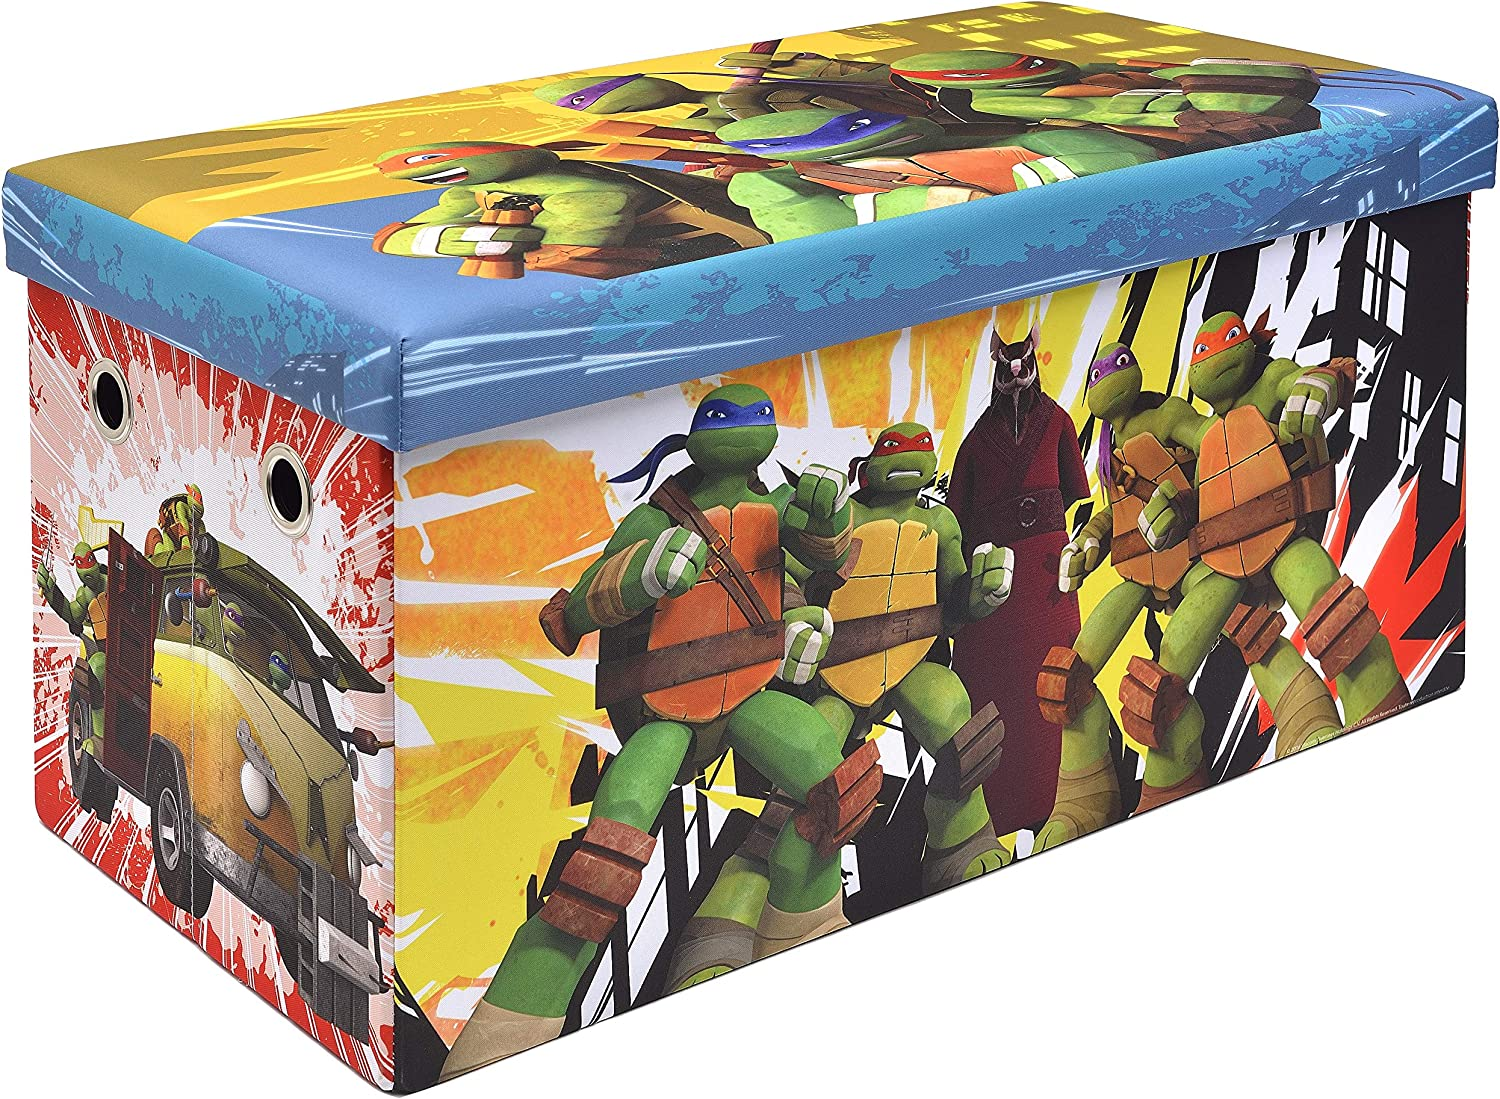 Teenage Mutant Ninja Turtles Storage Bench and Toy Chest, Officially Licensed, Perfect for any Playroom or Bedroom